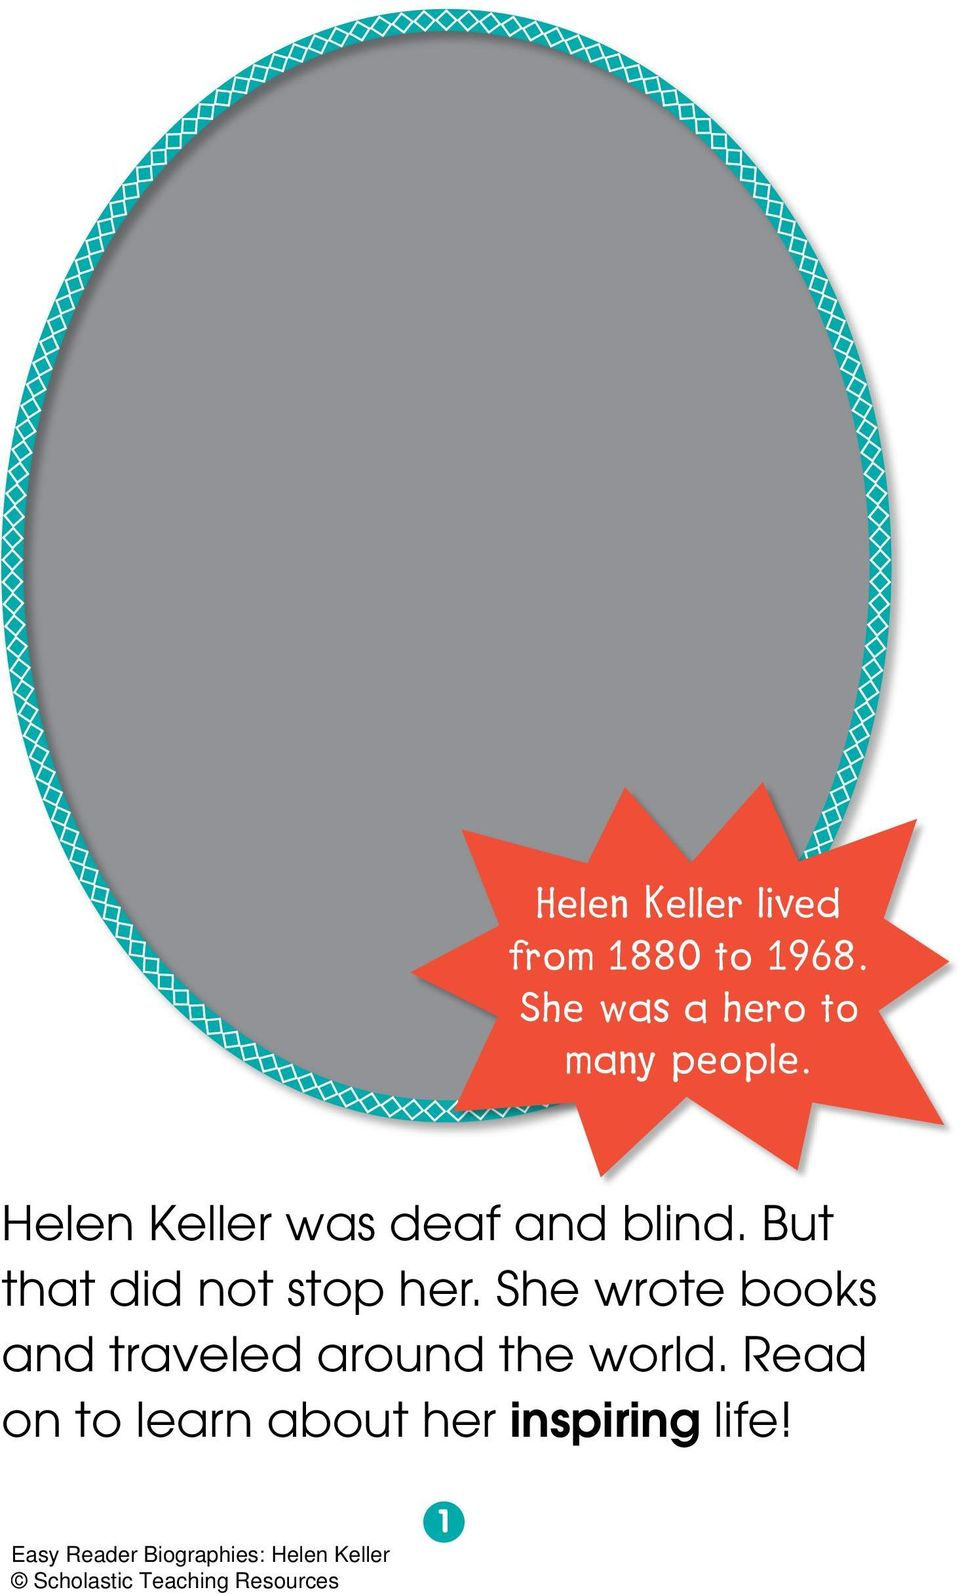 Helen Keller was deaf and blind.